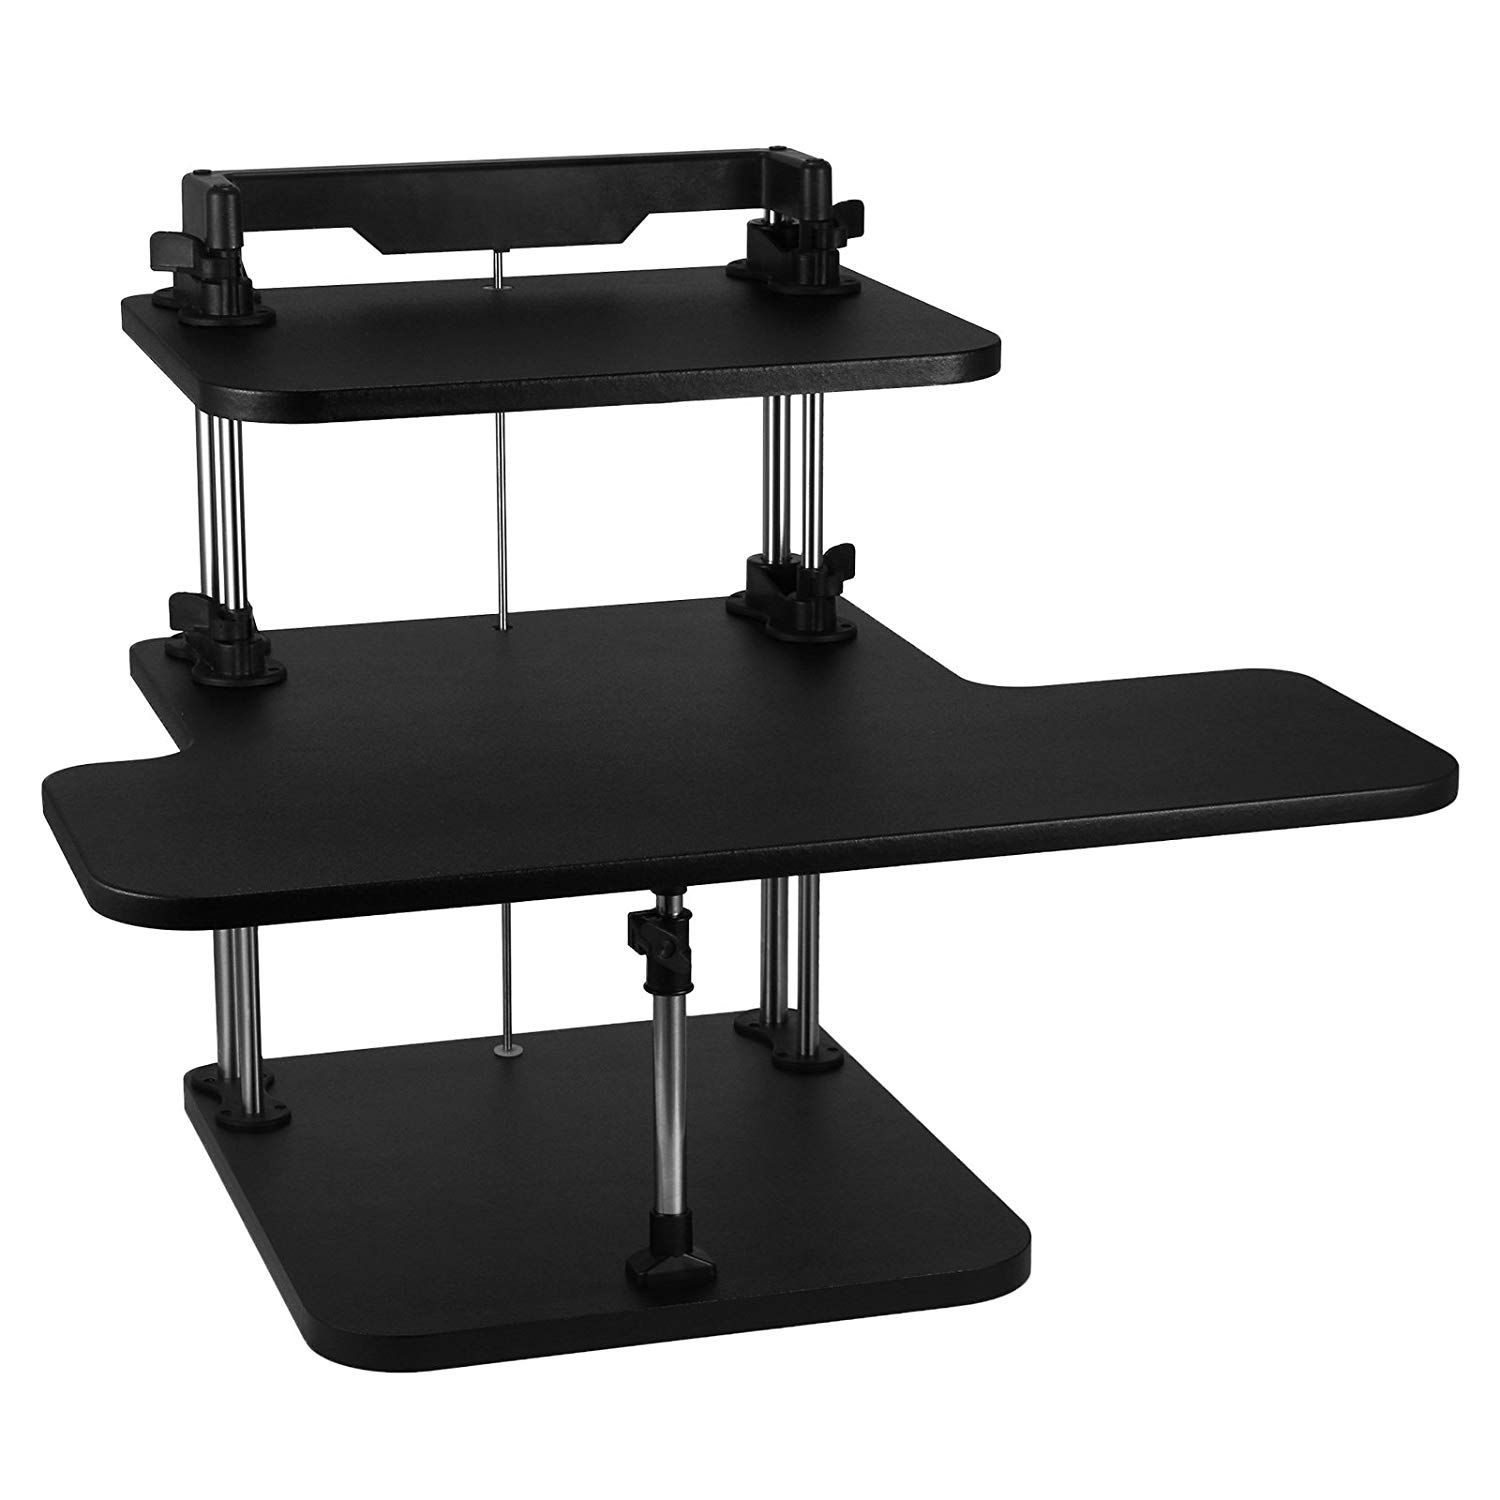 Bestequip standing desk height adjustable stand up desk tier sit